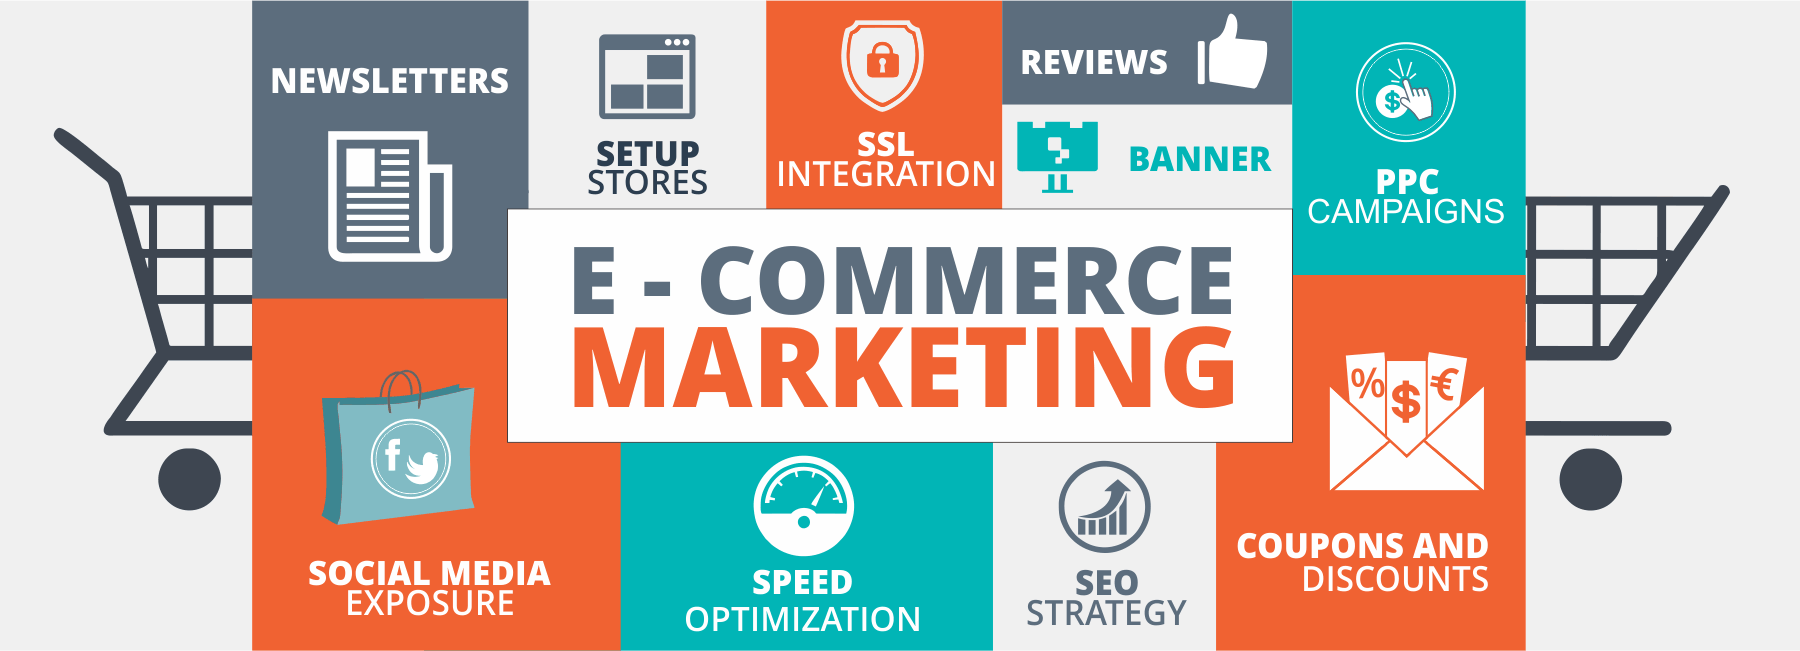 Tips To Get More Customers Through An eCommerce Website